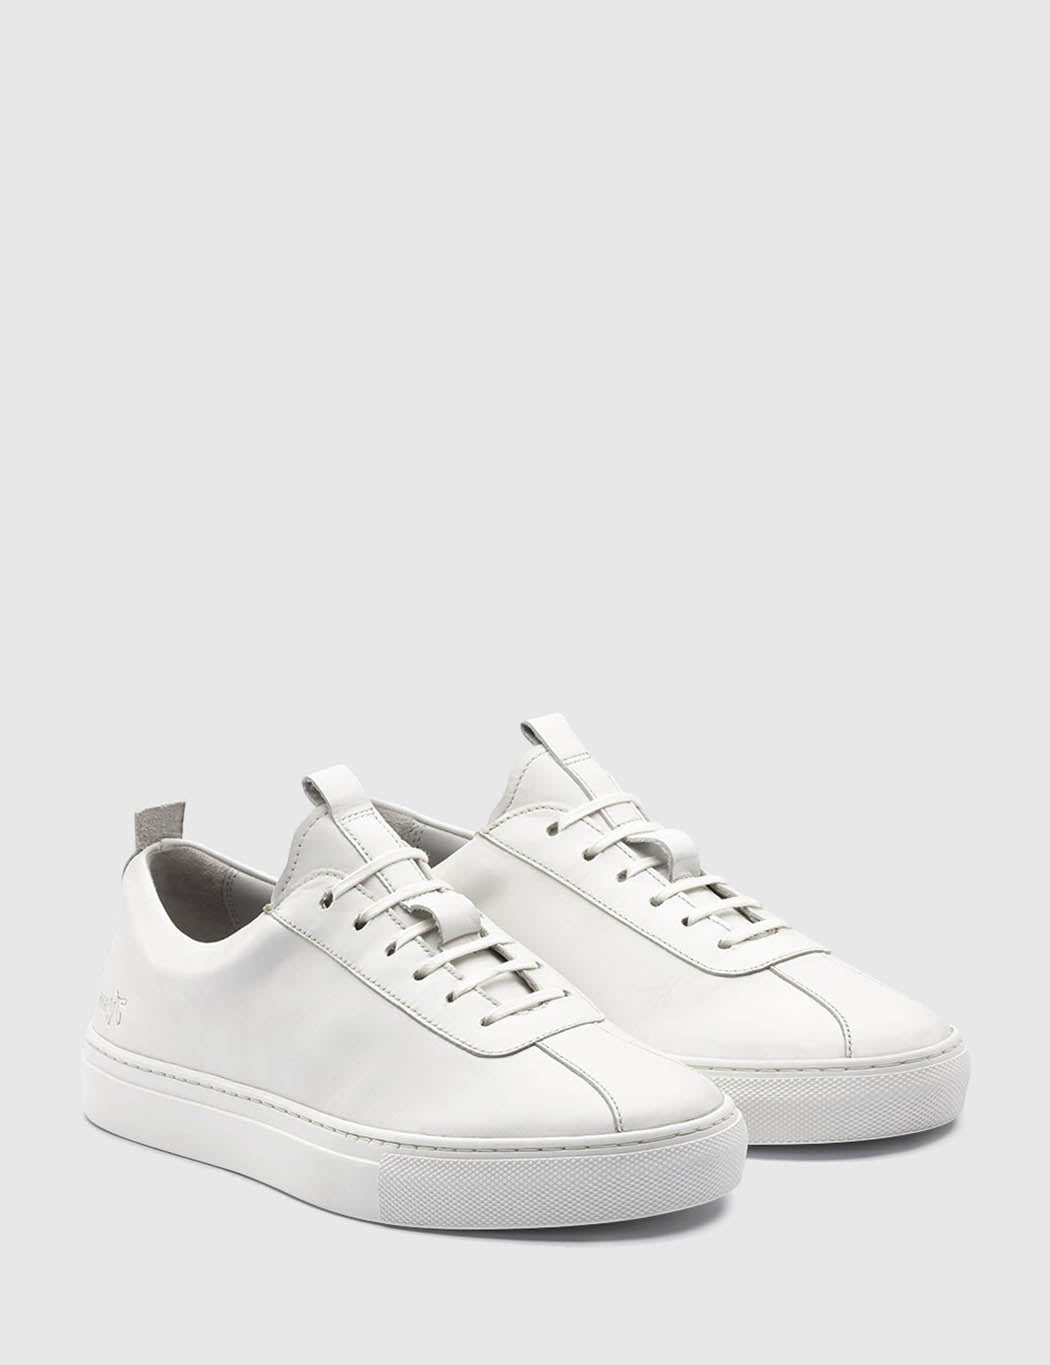 Womens Grenson Sneakers 1 - White | URBAN EXCESS.